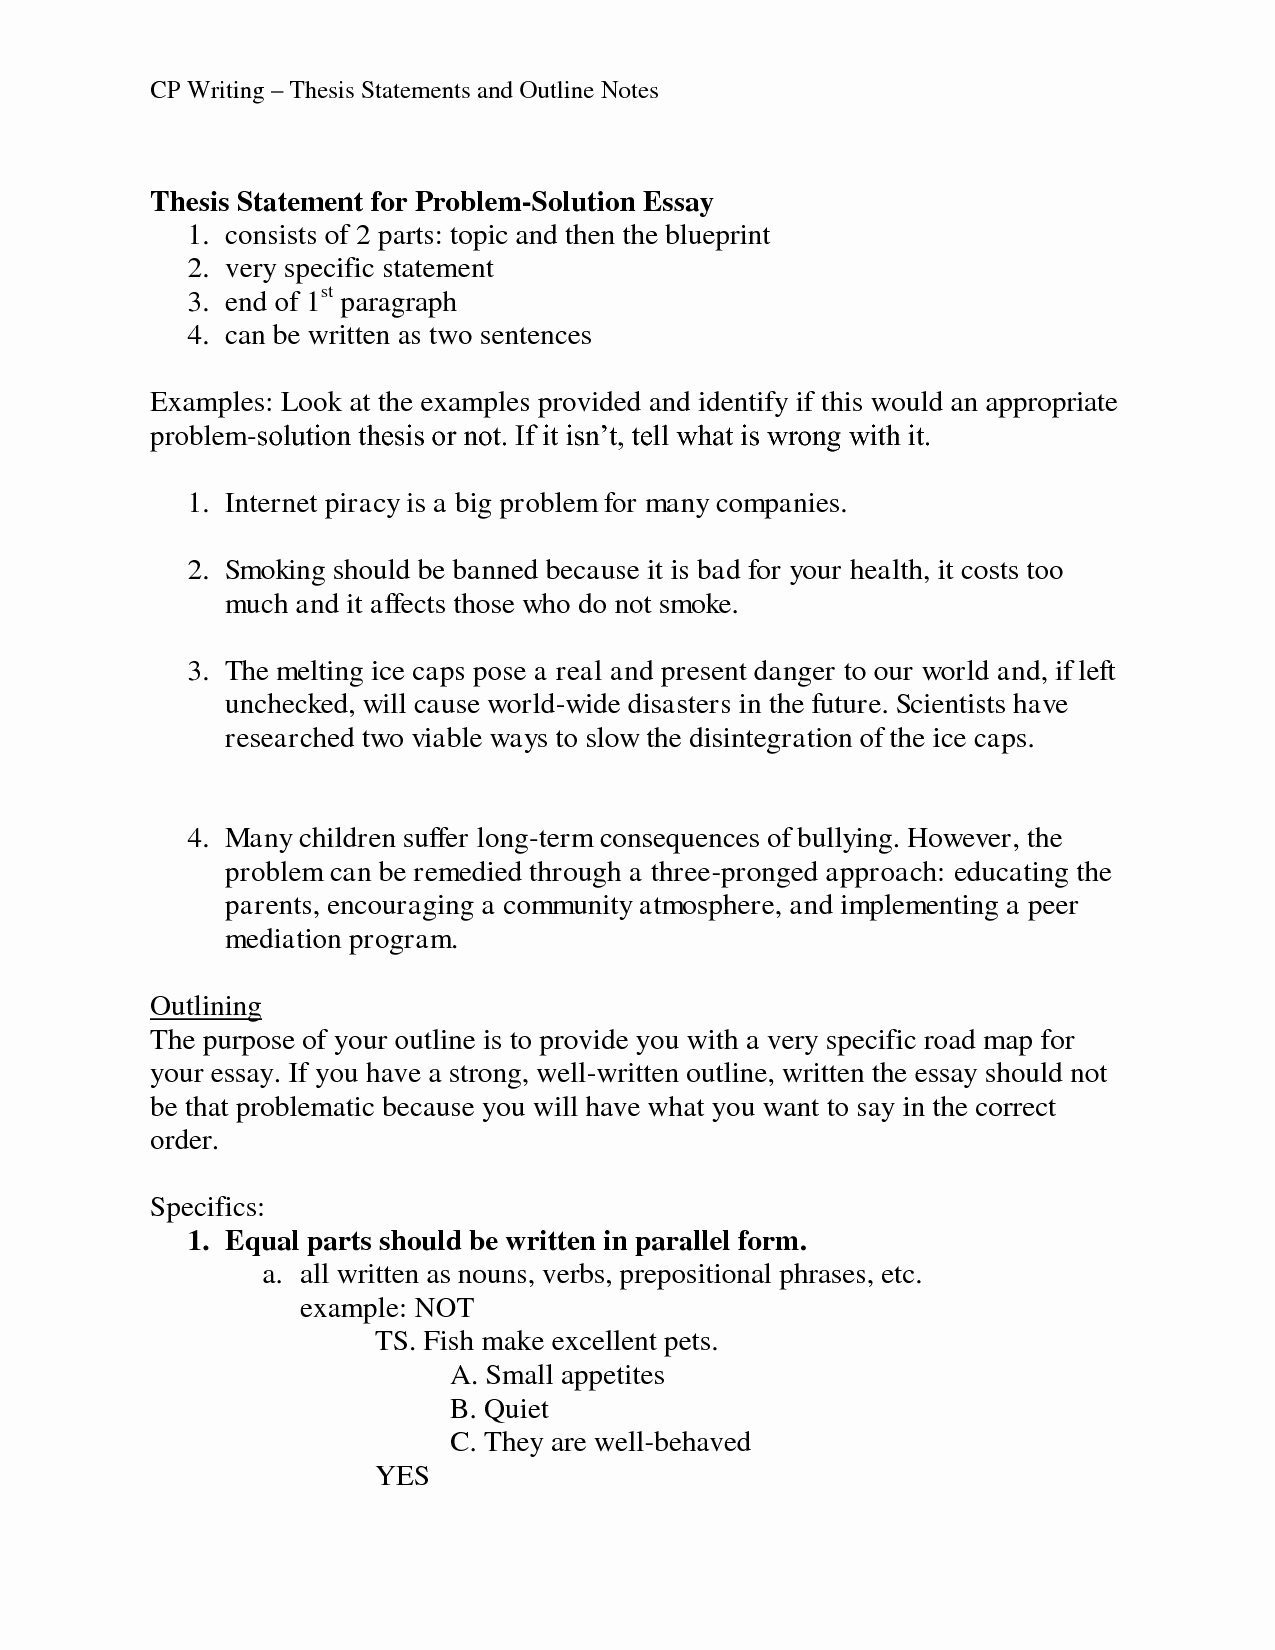 002 Research Paper Example Of Statement The Problem In About Bullyingrrative Paragraph Examples Myself Inspirational Argumentative Essay Papers Sample An With Family Unusual Bullying Cyber Full